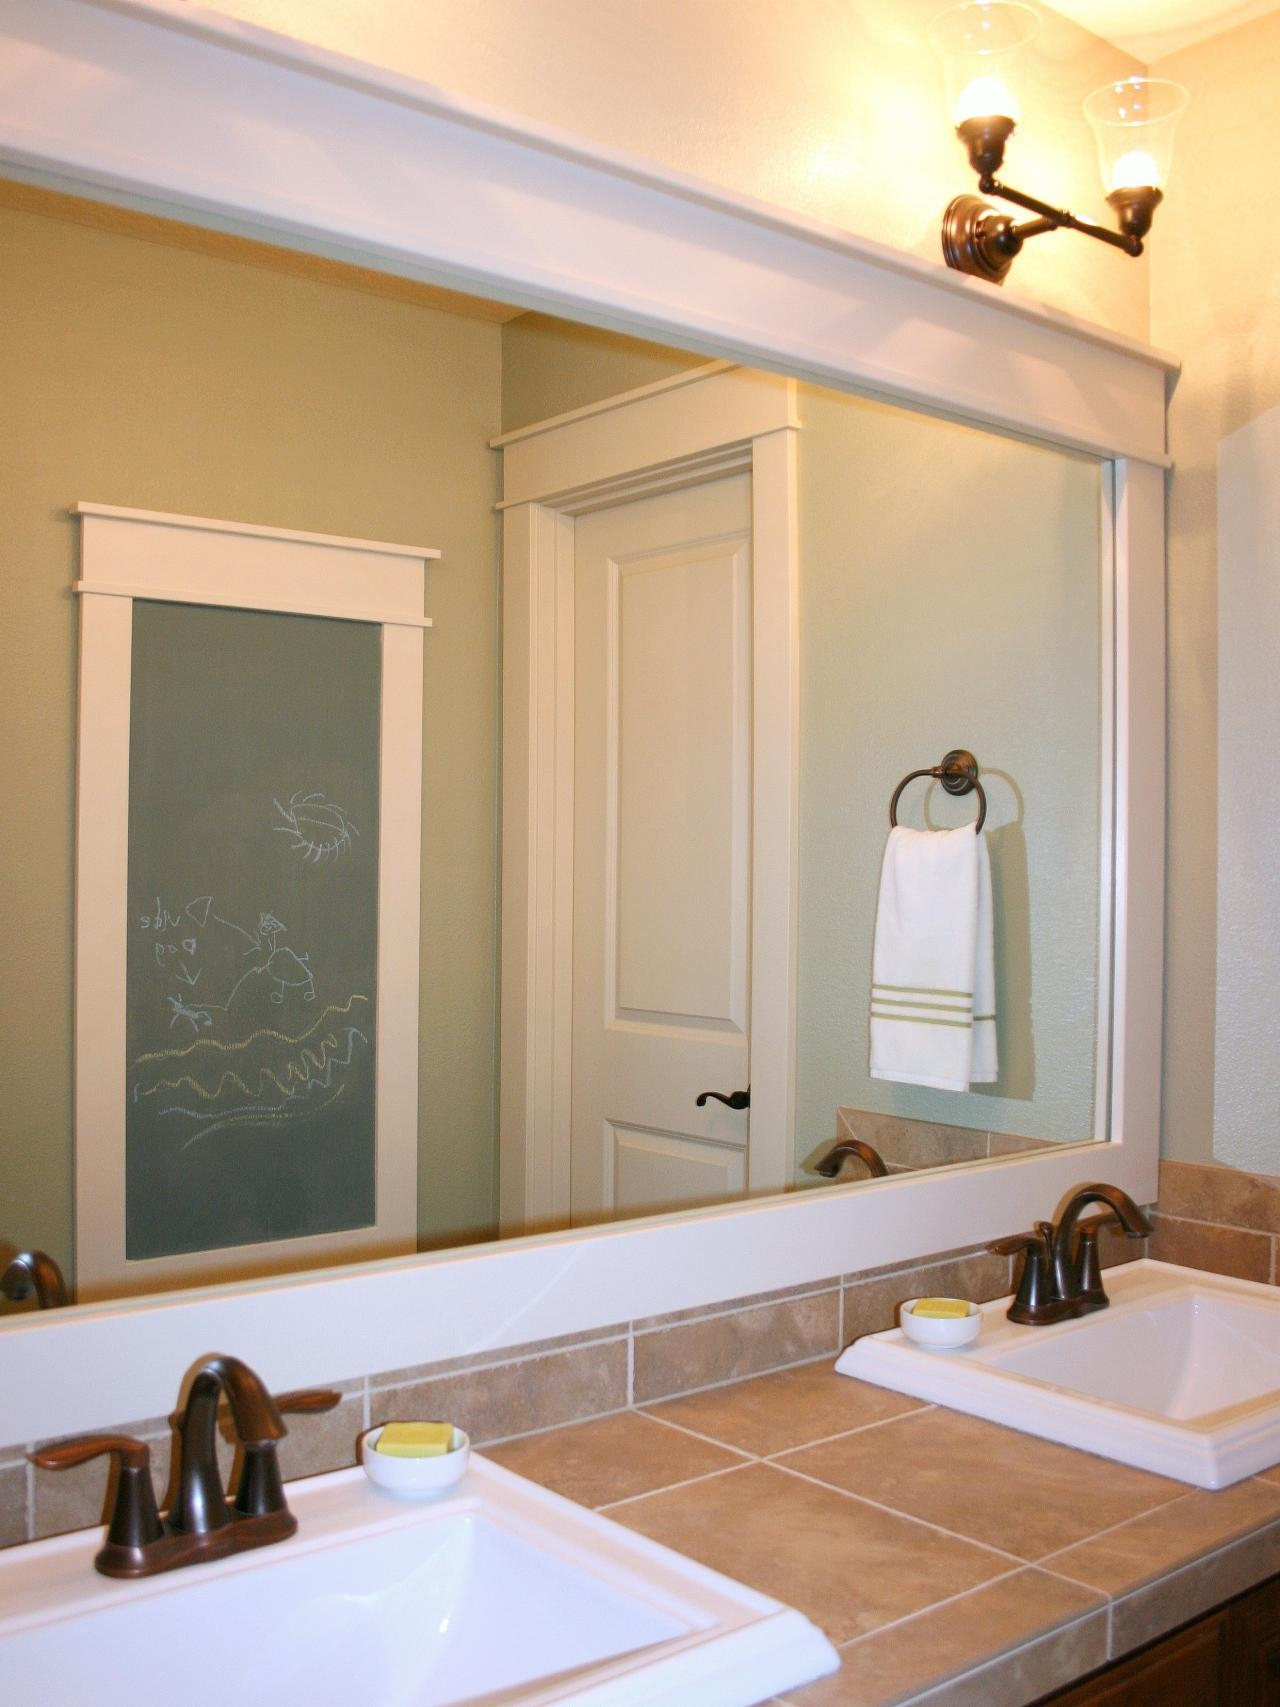 Bathroom Big Mirrors 20 Inspirations Large Framed Bathroom Wall Mirrors